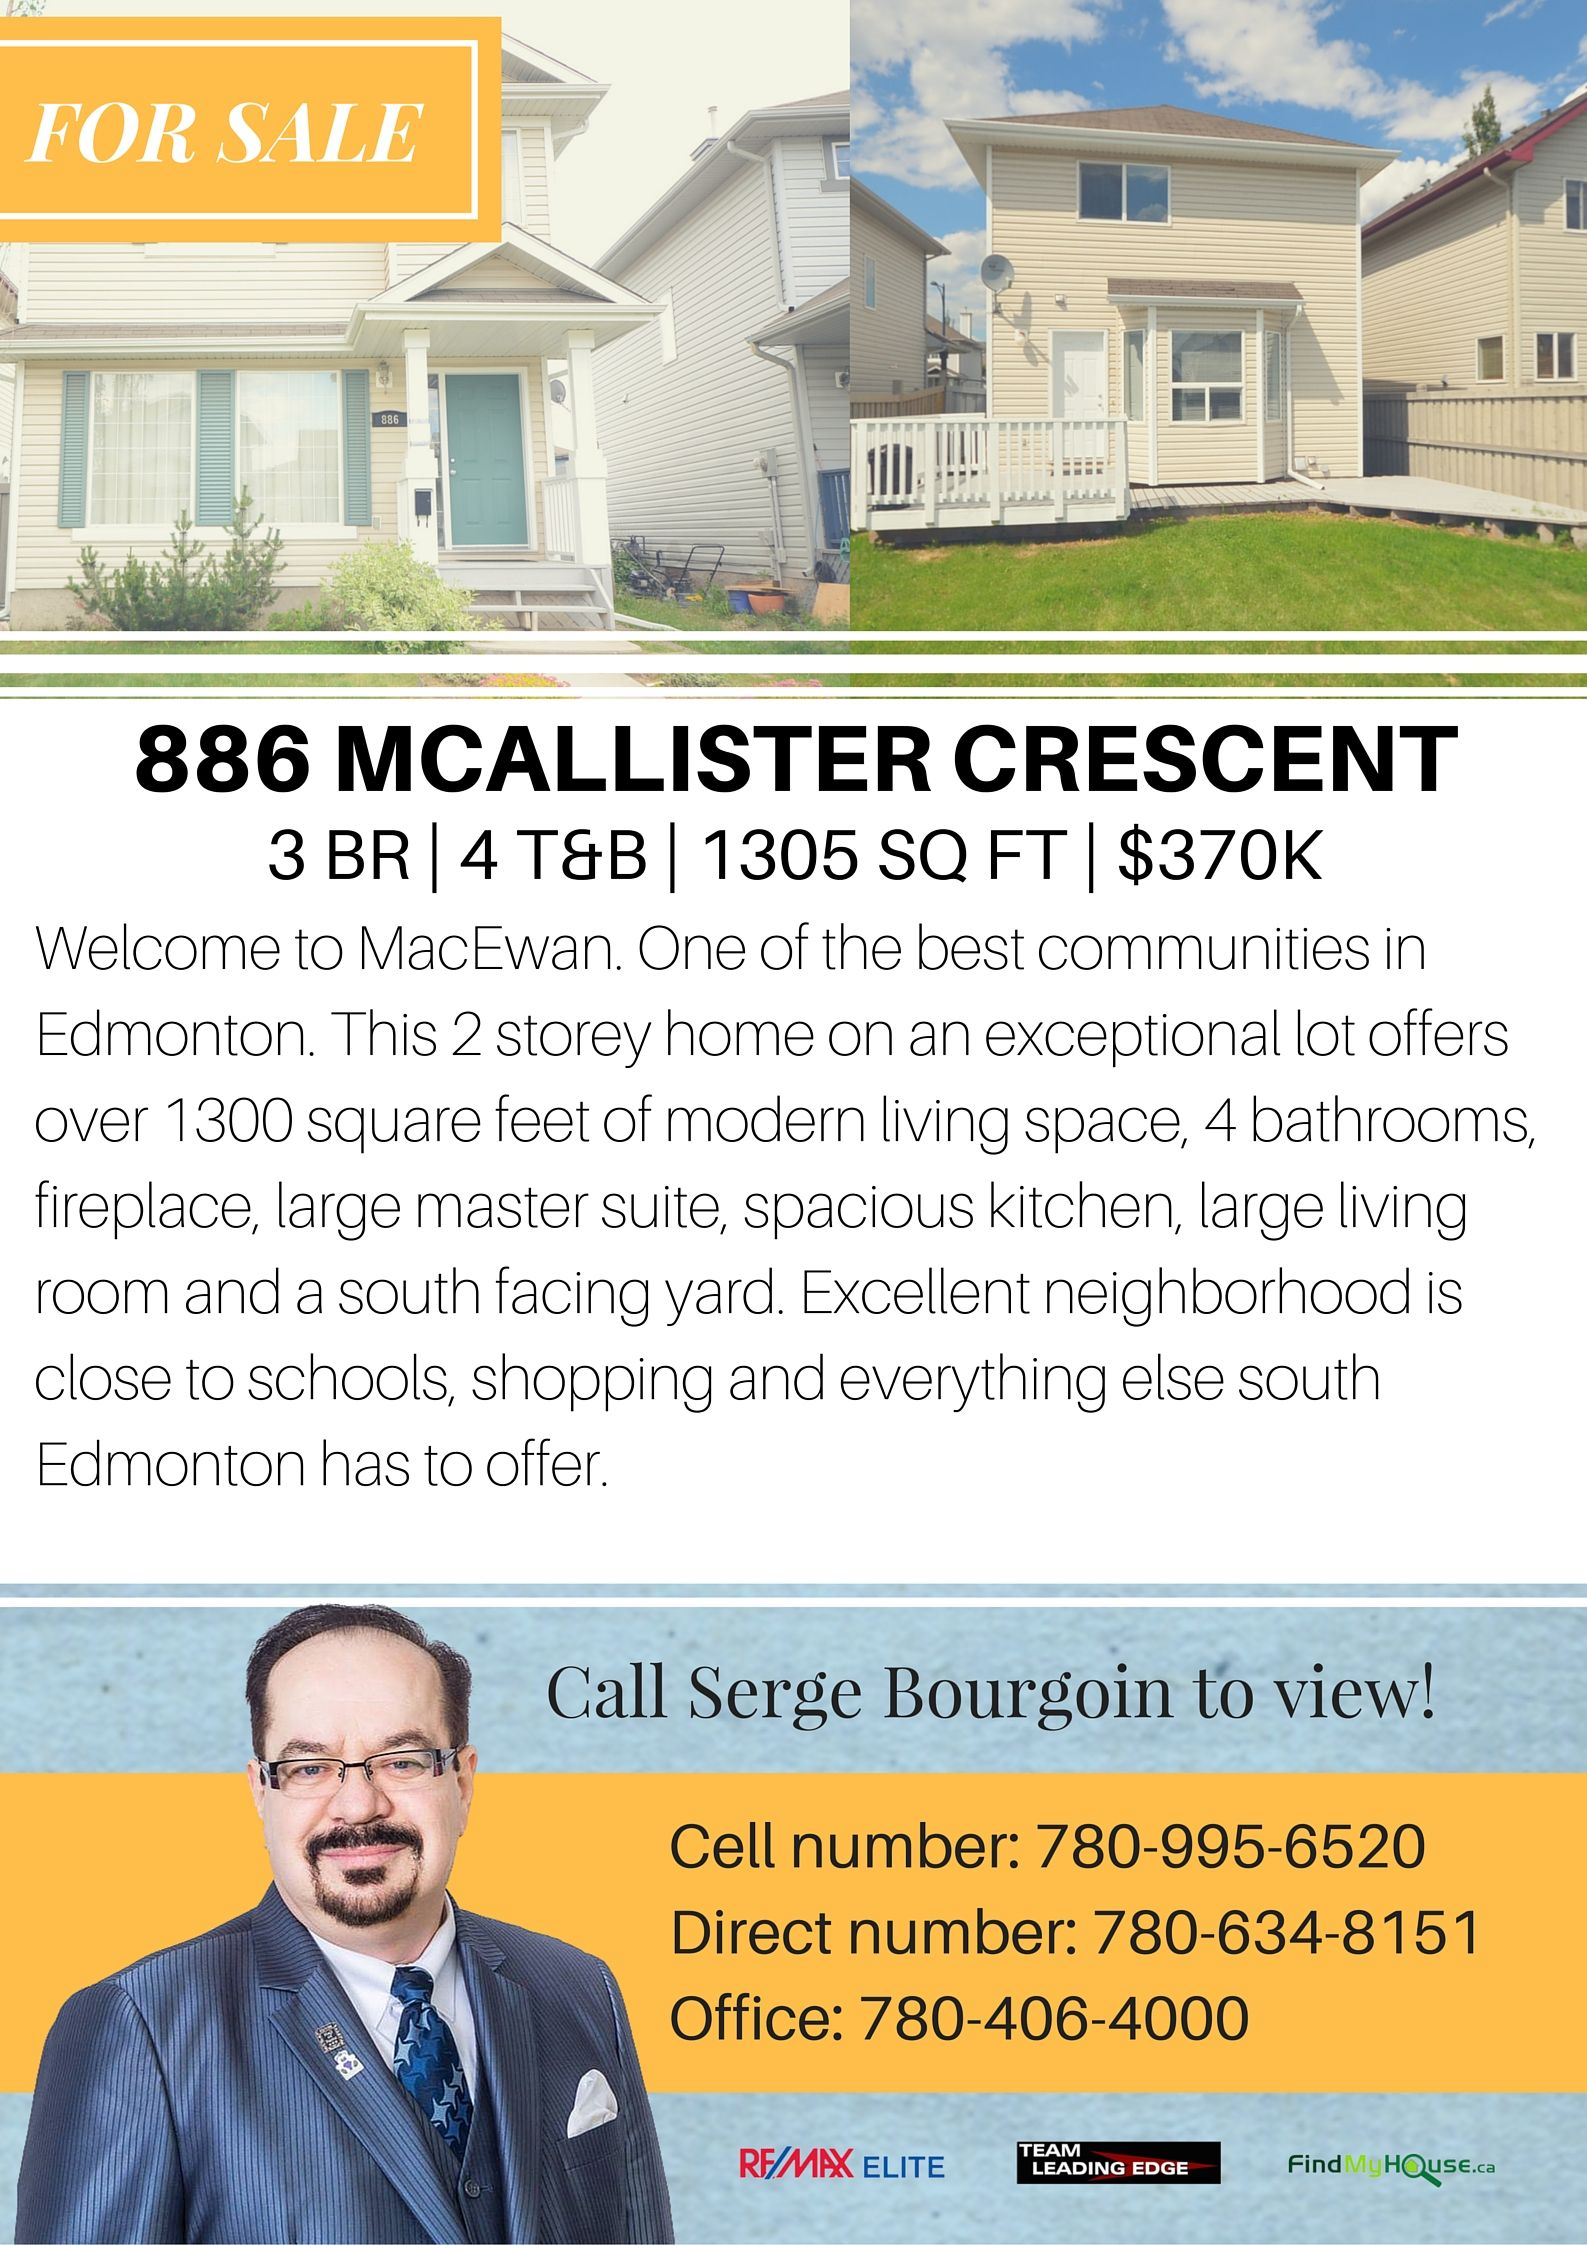 886 Mcallister Crescent MacEwan Edmonton Home For Sale MLS Listings